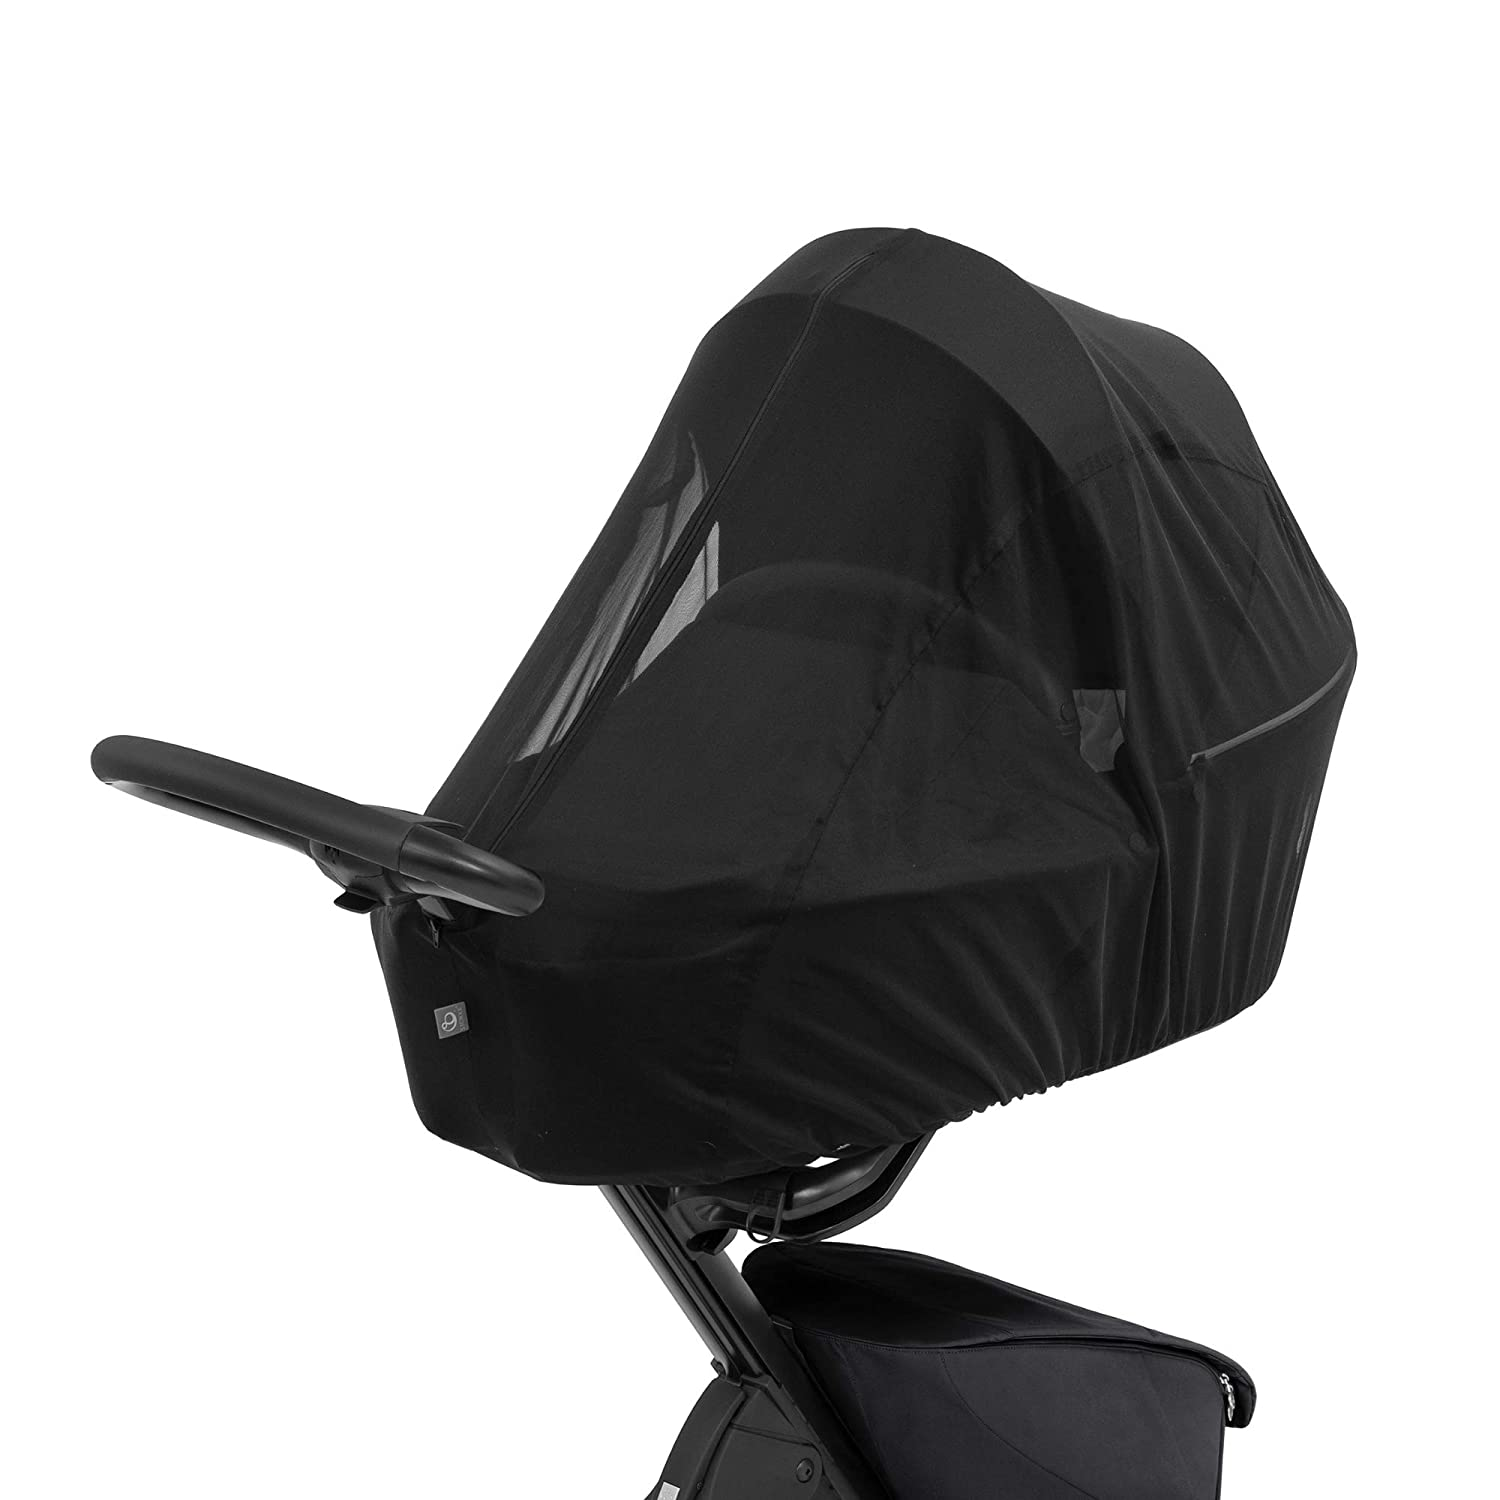 Stokke Xplory X Mosquito Net, Black - Protects Baby from Insects - Made with Breathable Mesh - Easy to Use, Transport & Store - Folds Into Integrated Accessory Bag